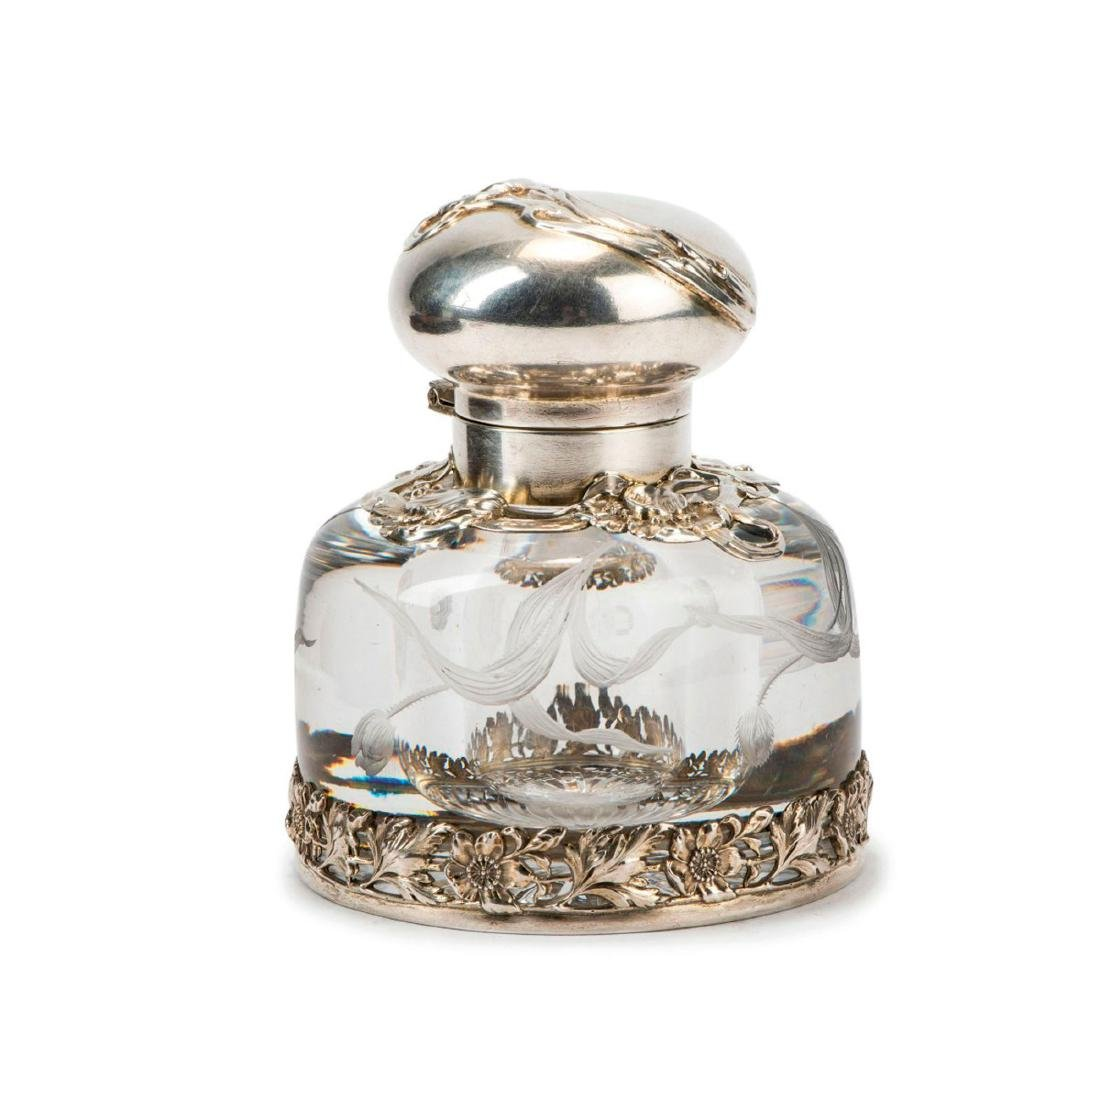 Inkwell with silver mounting, 1920s